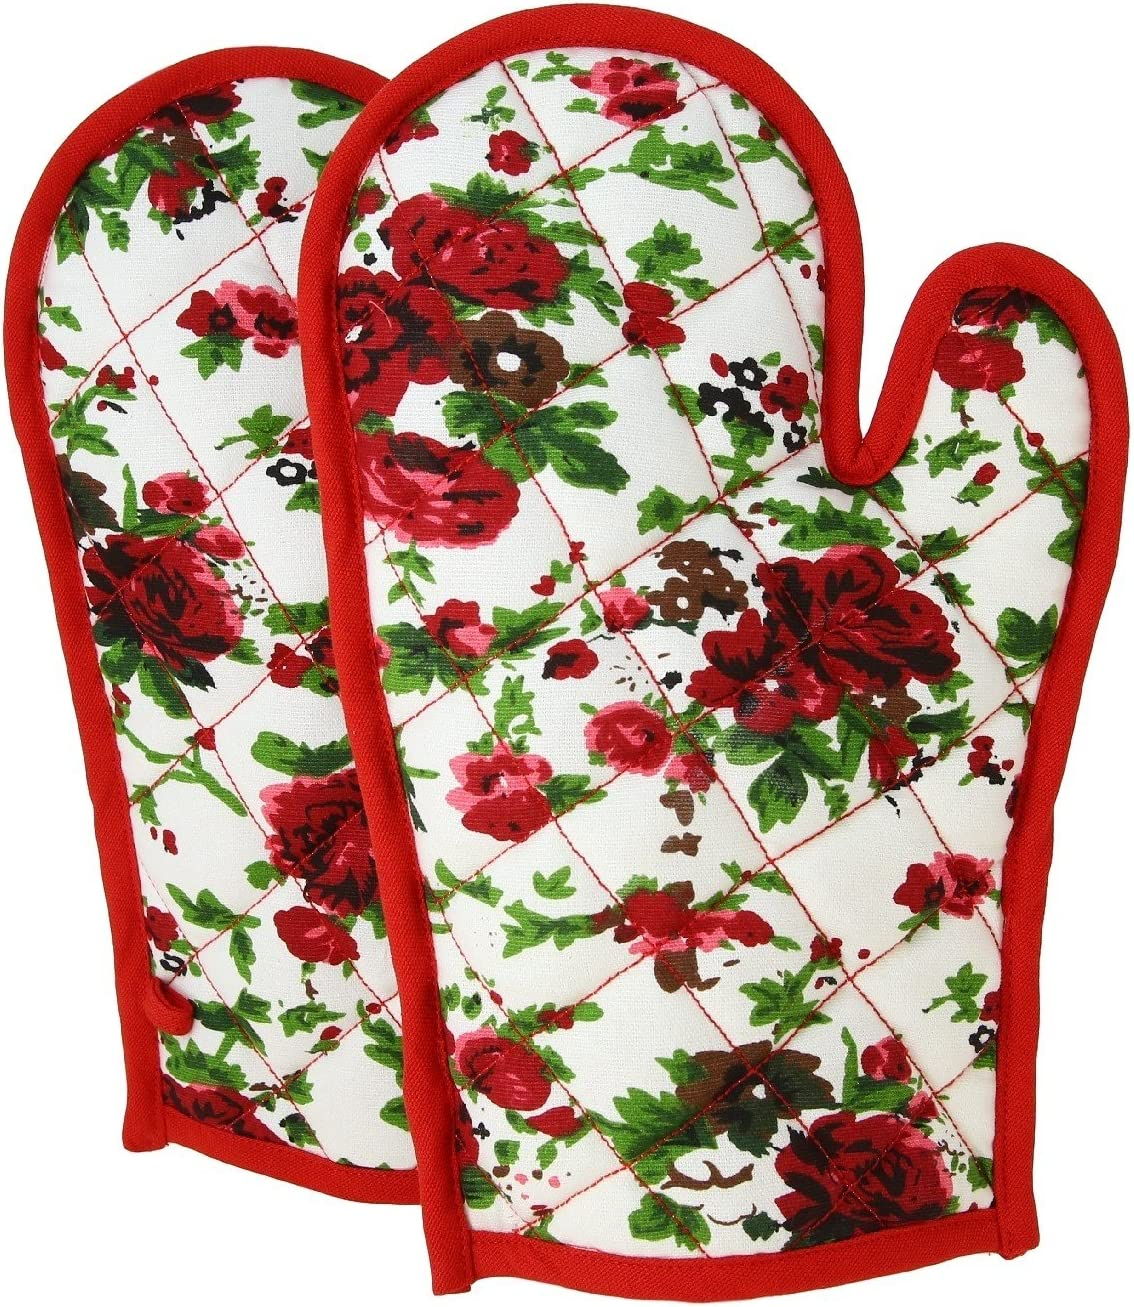 ShalinIndia Cotton Oven Mitts and Pot Holders OG02-6904 Red Quilted Cotton Oven Gloves 8 x 12 Inch Cooking Gloves for Women